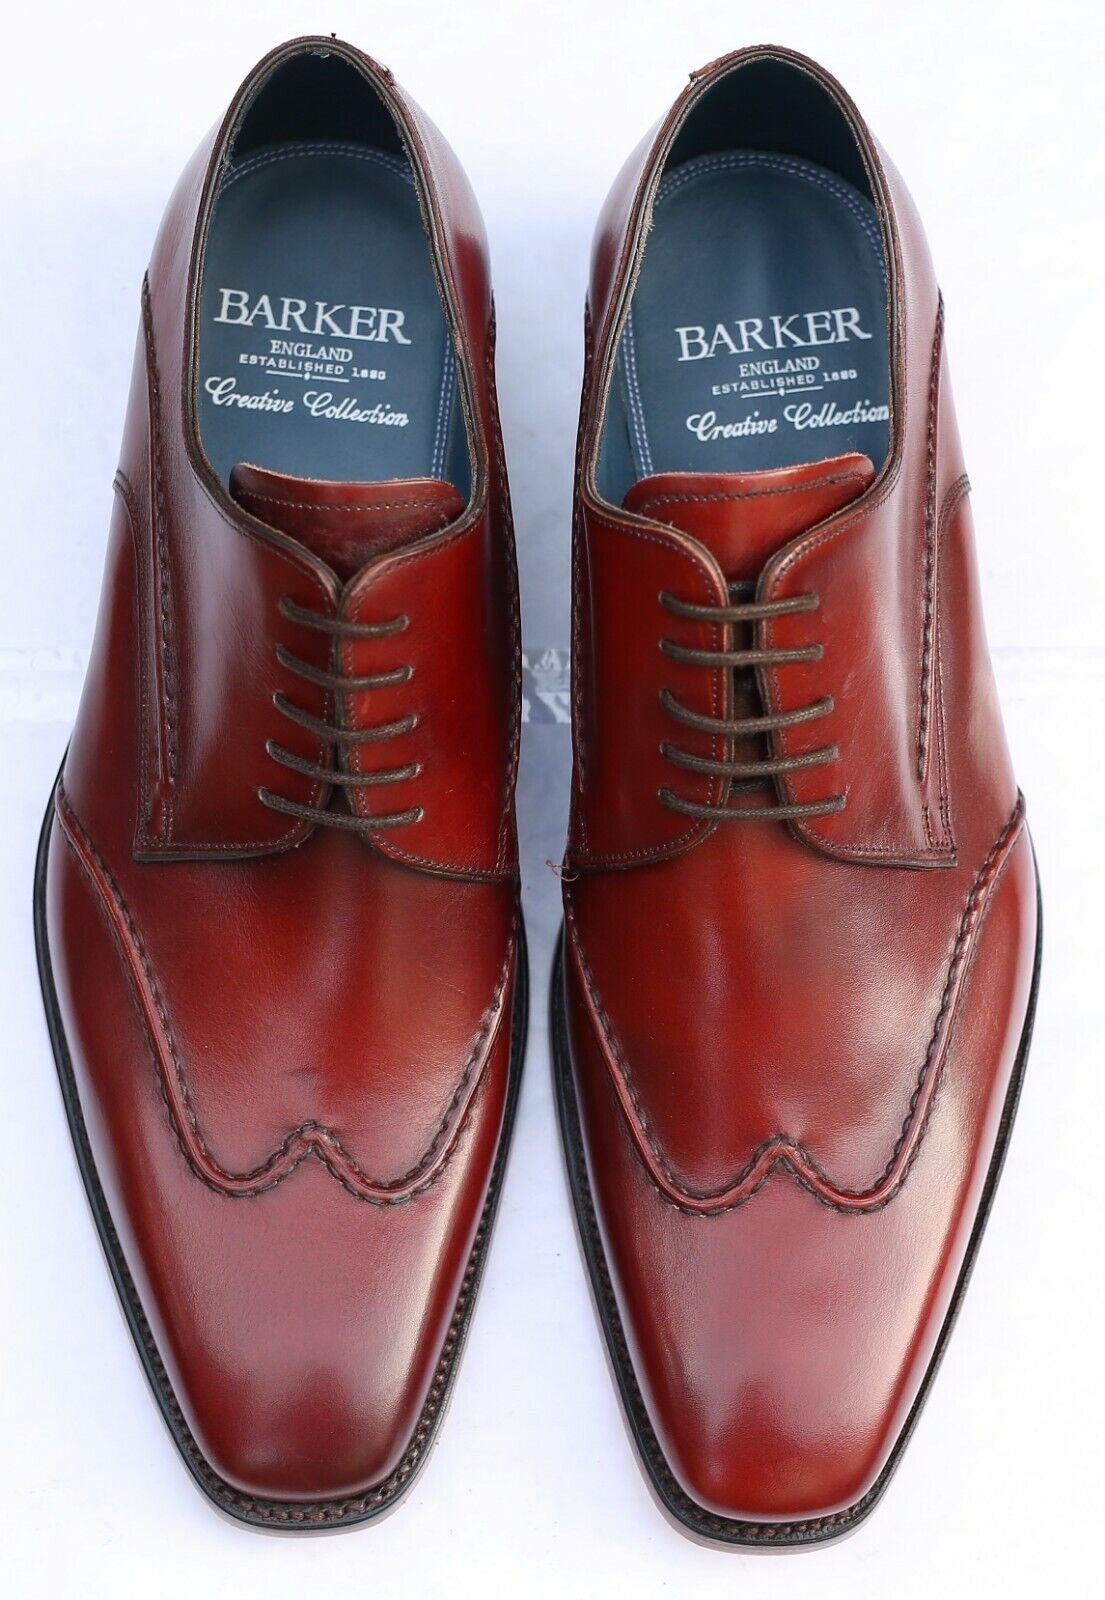 New & Boxed Barker 'Brooke' Derby Cherry Leather shoes 8 8 8   8.5 UK 42   42.5 EU 6c9451